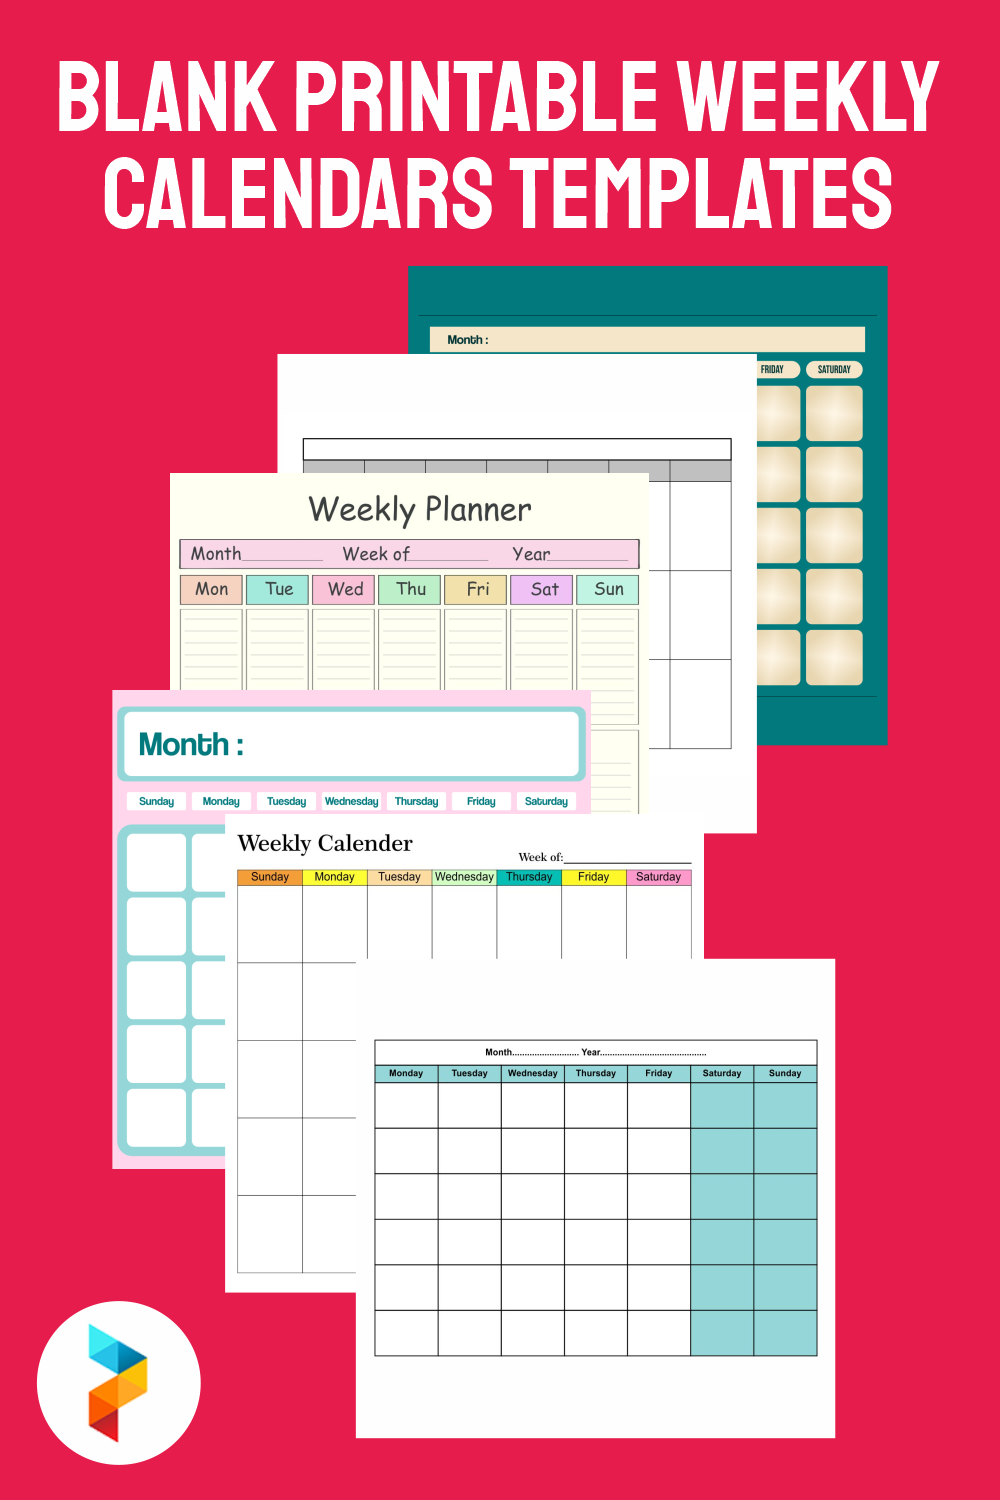 Blank Printable Weekly Calendars Templates